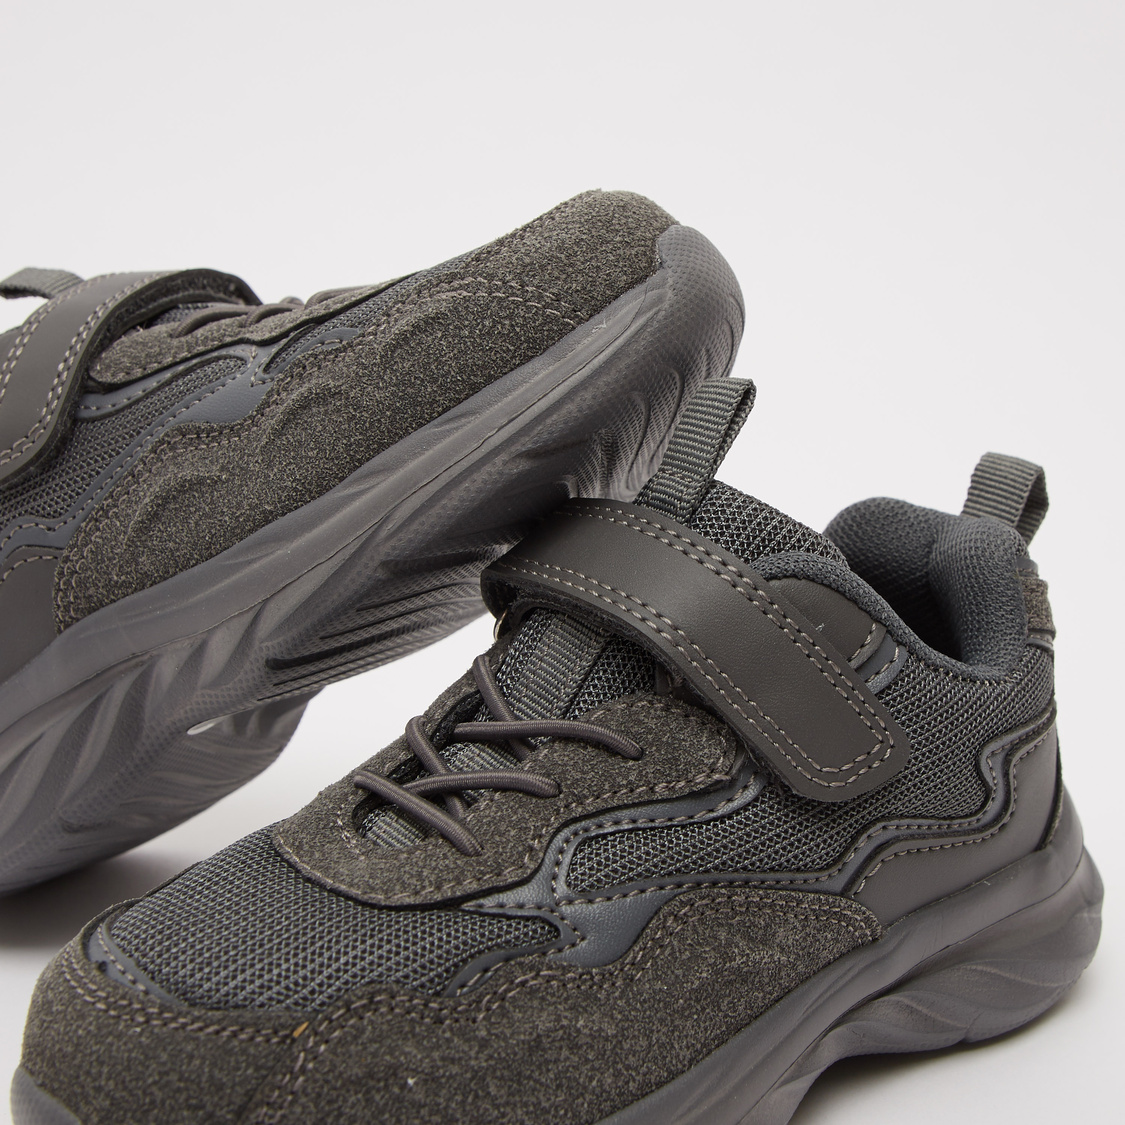 Textured Lace-Up Sports Shoes with Hook and Loop Closure